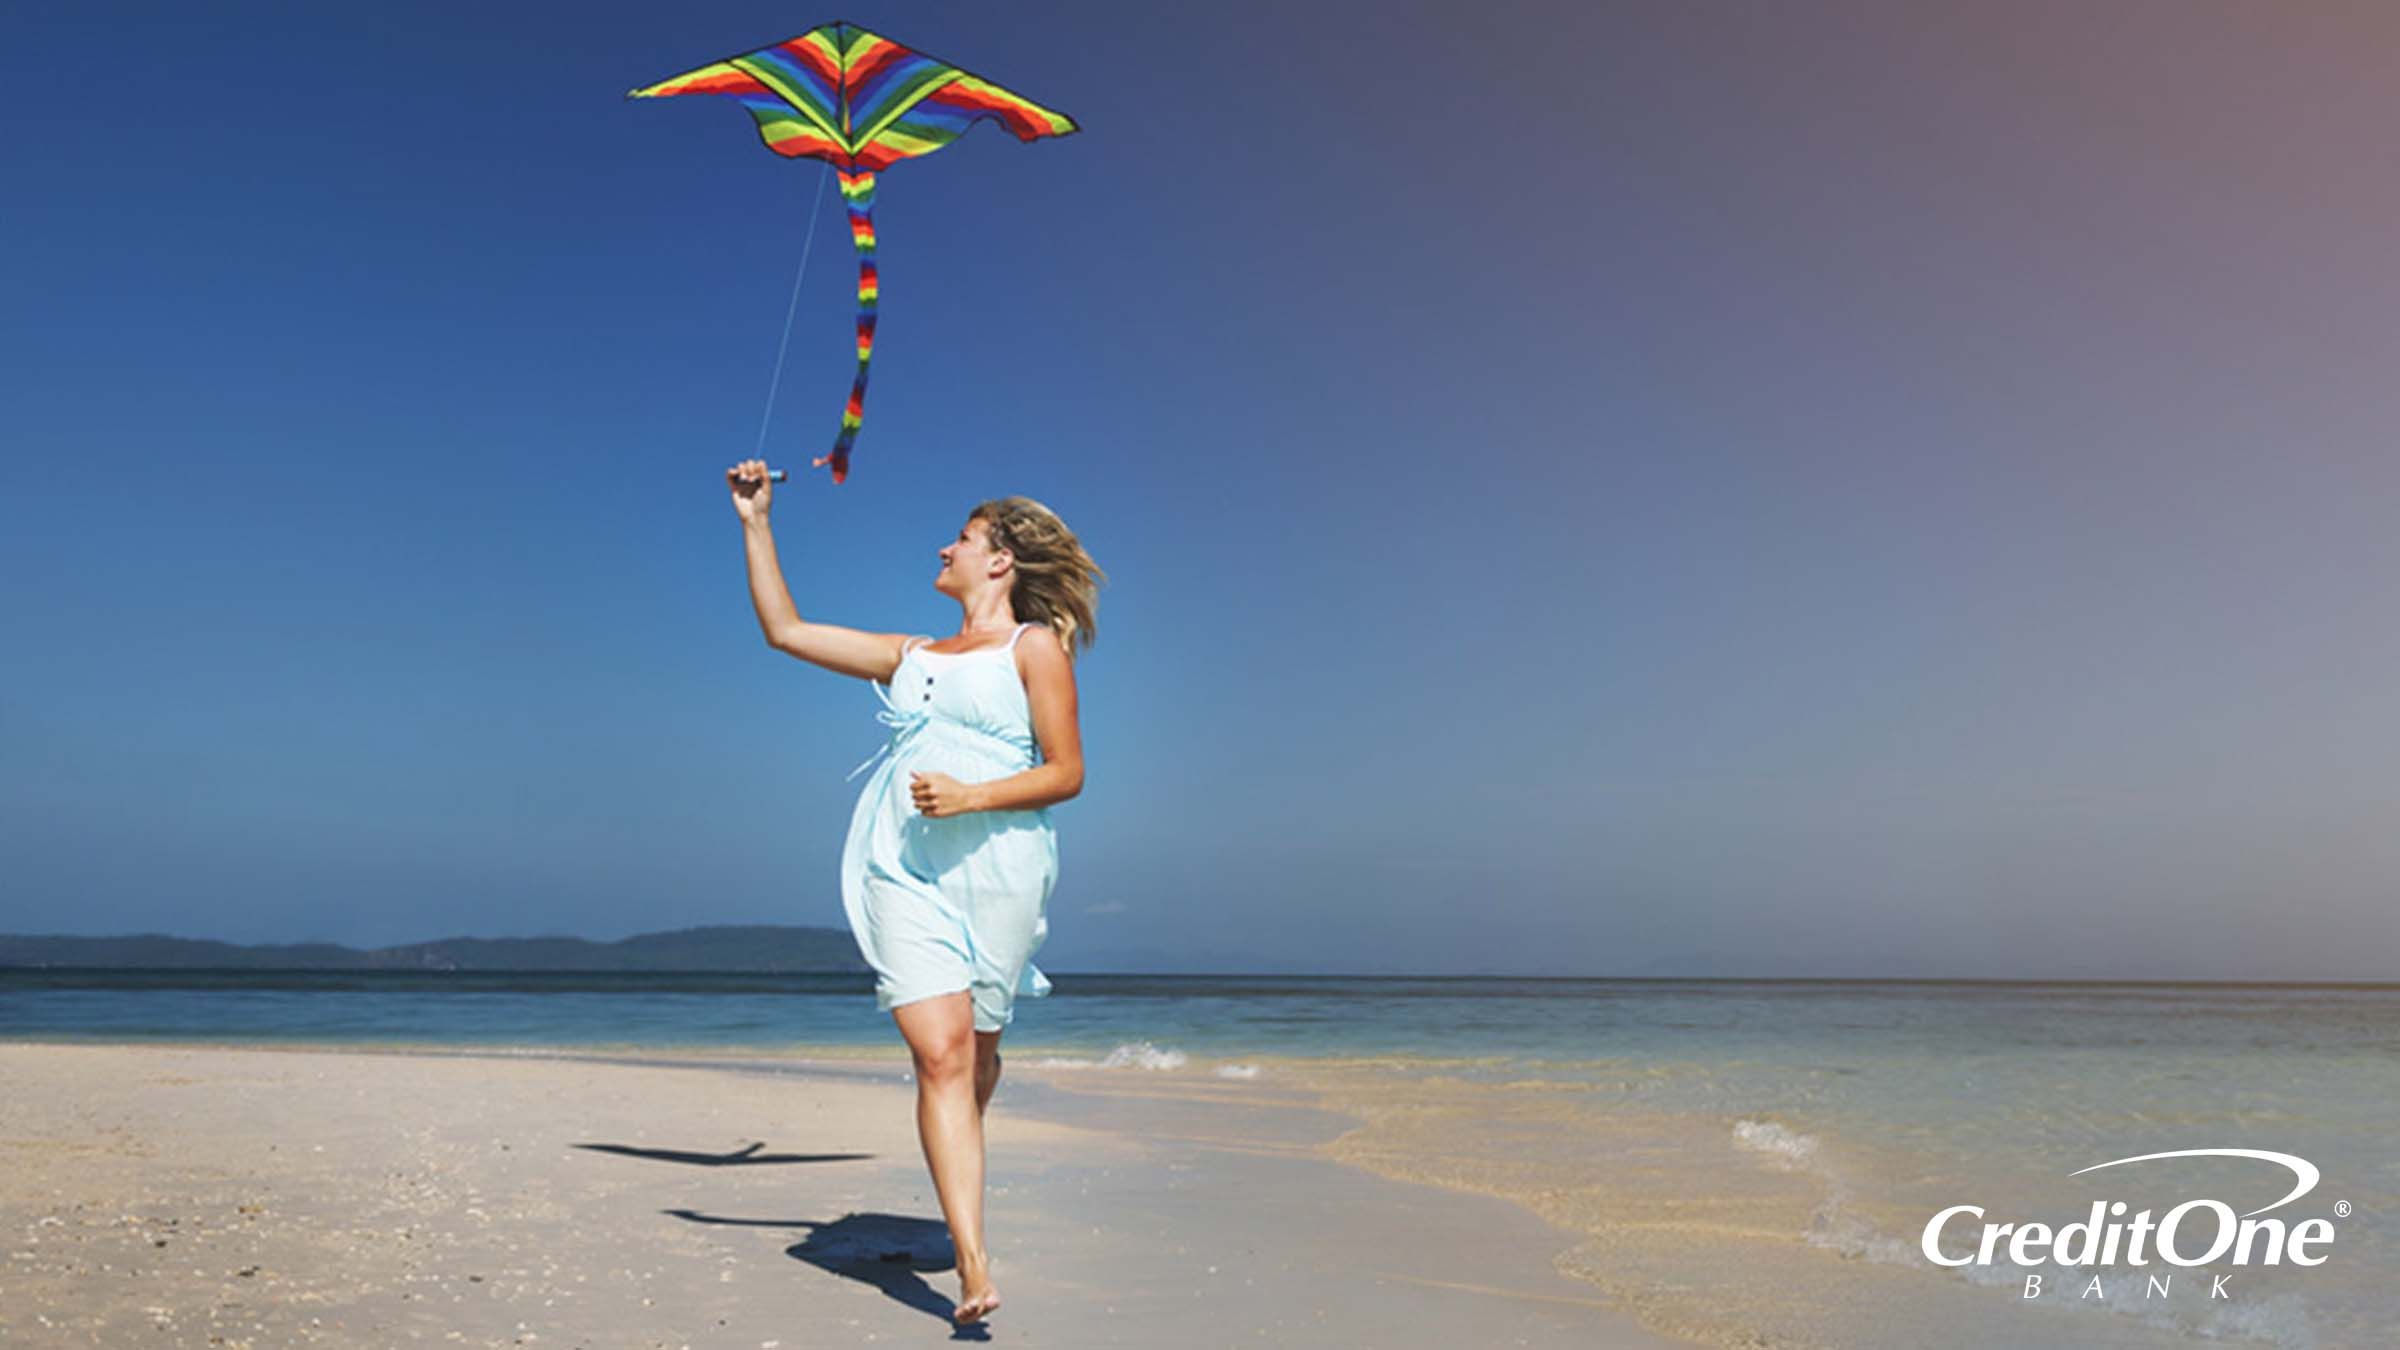 Woman running on a shoreline with a kite flying overhead